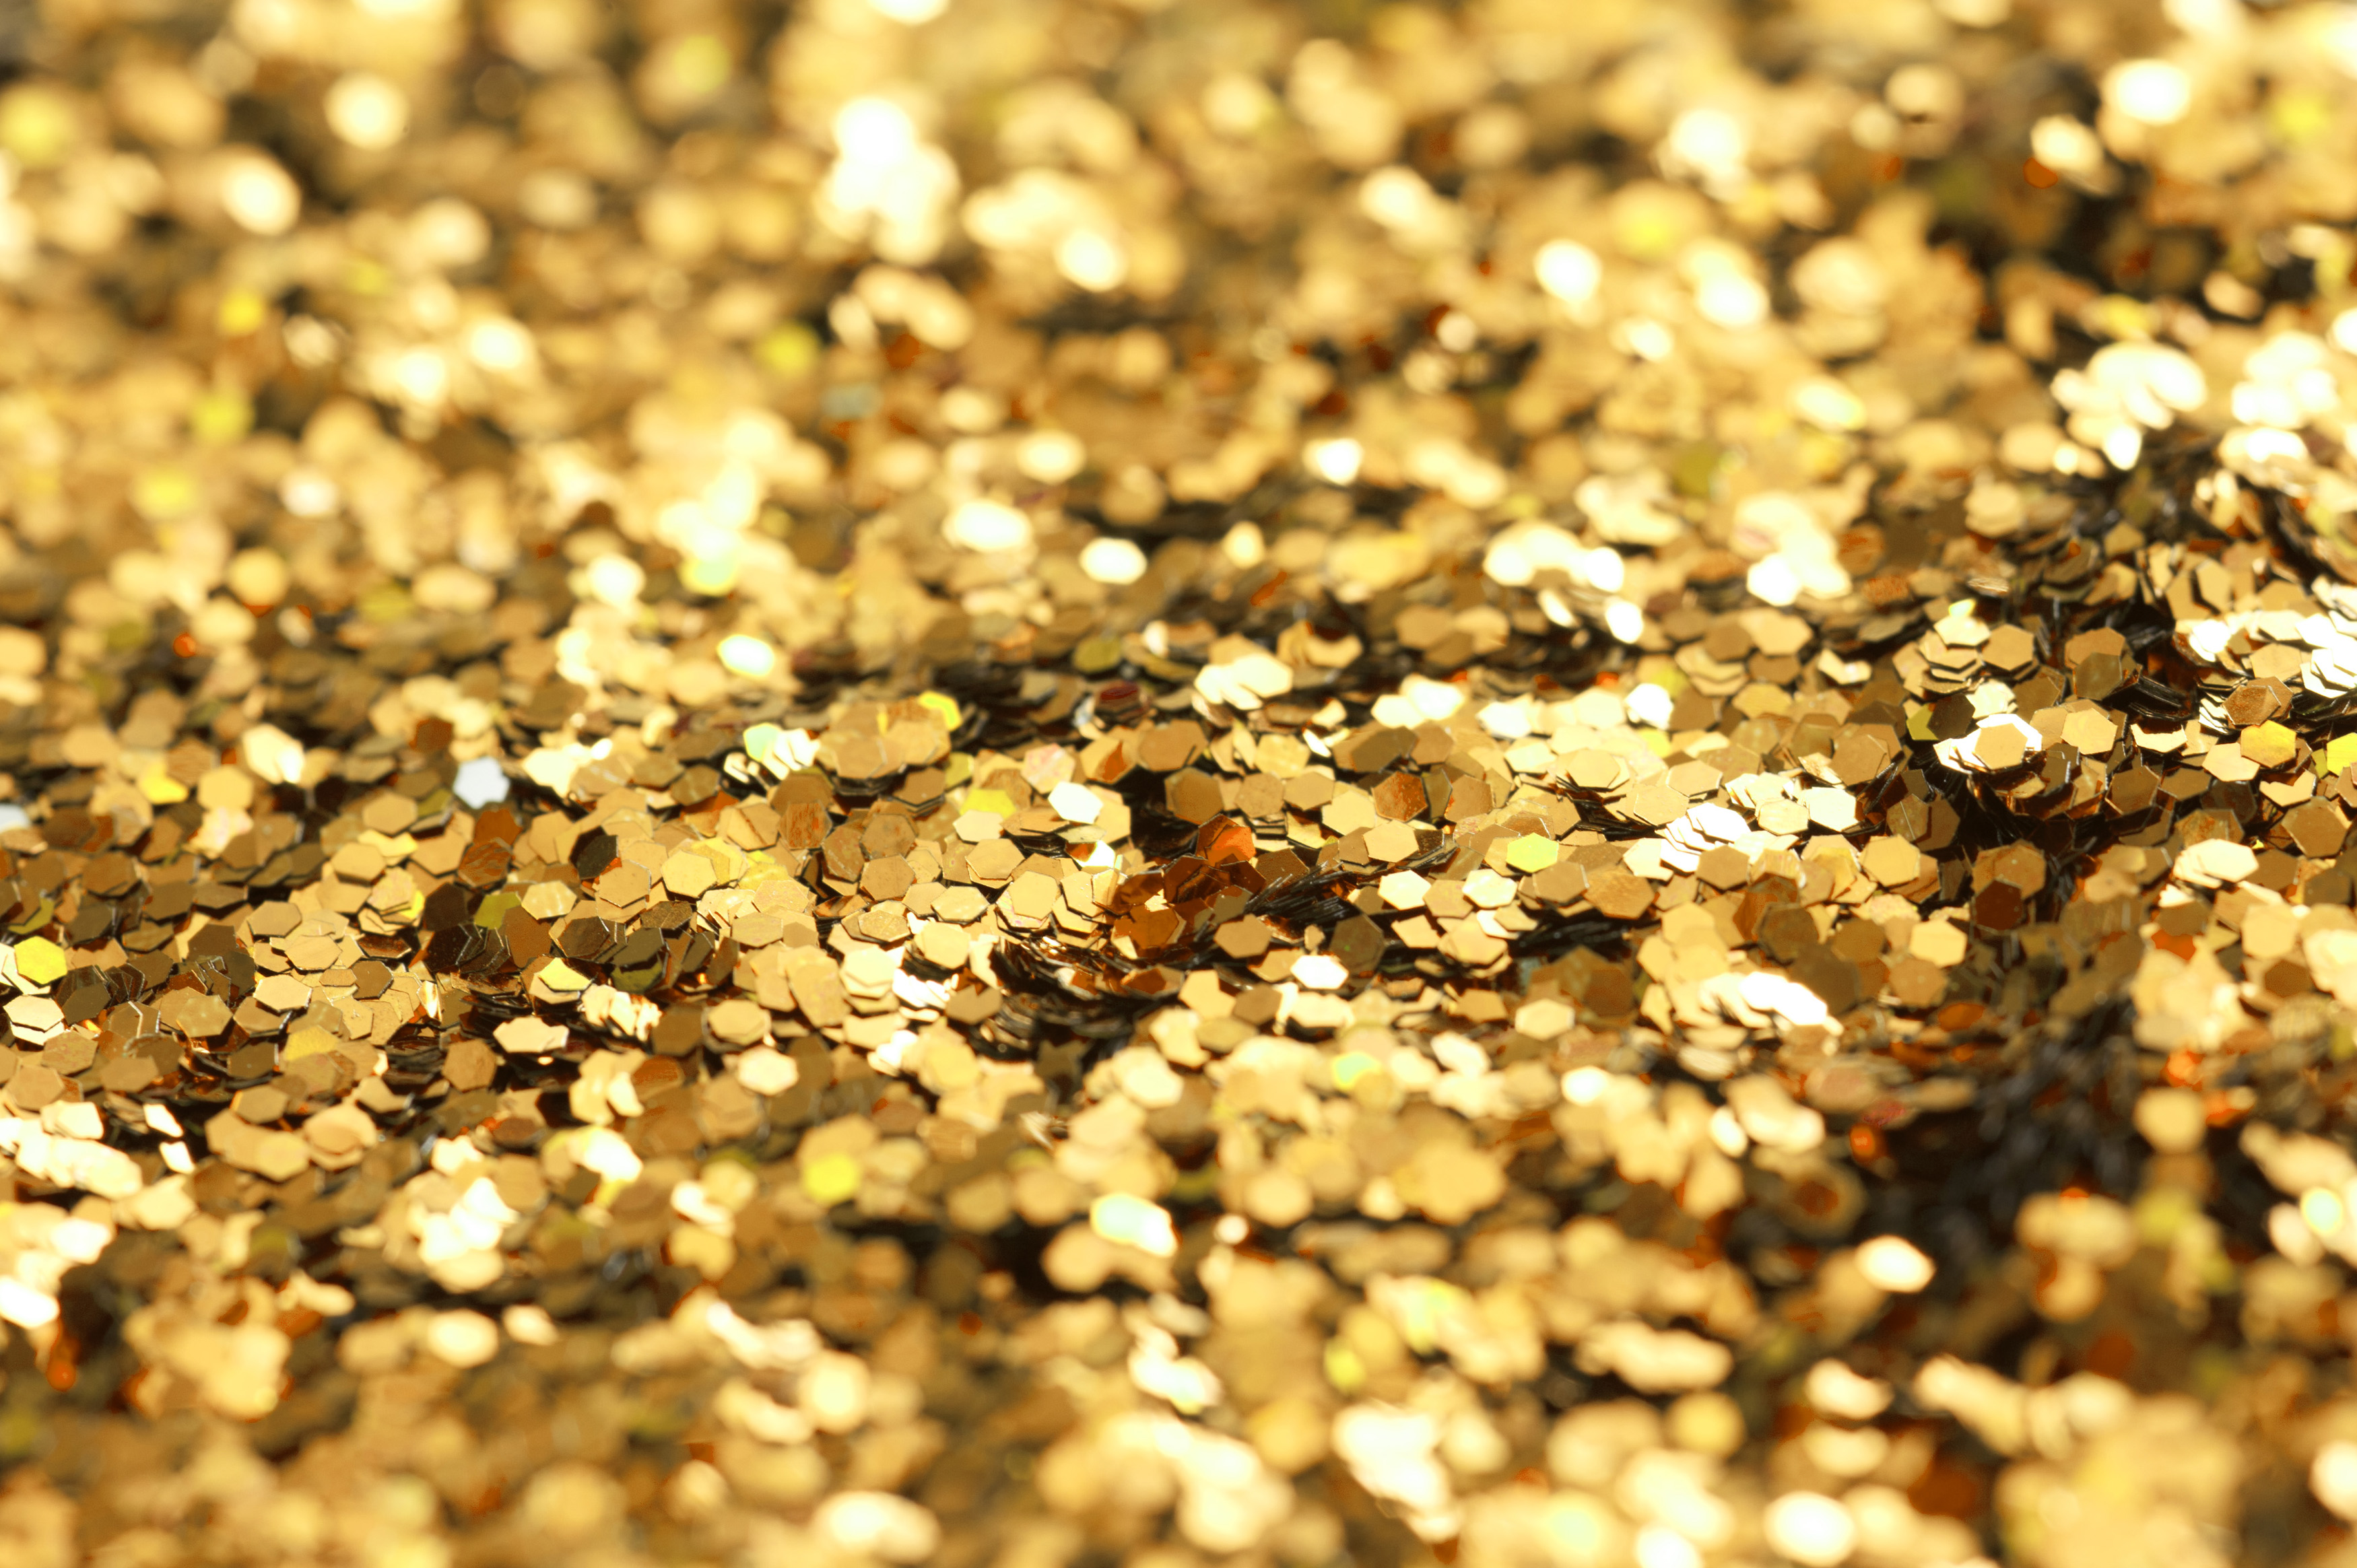 Free Photography Stock Free Stock Photo 11929 Sparkling Gold Glitter Freeimageslive